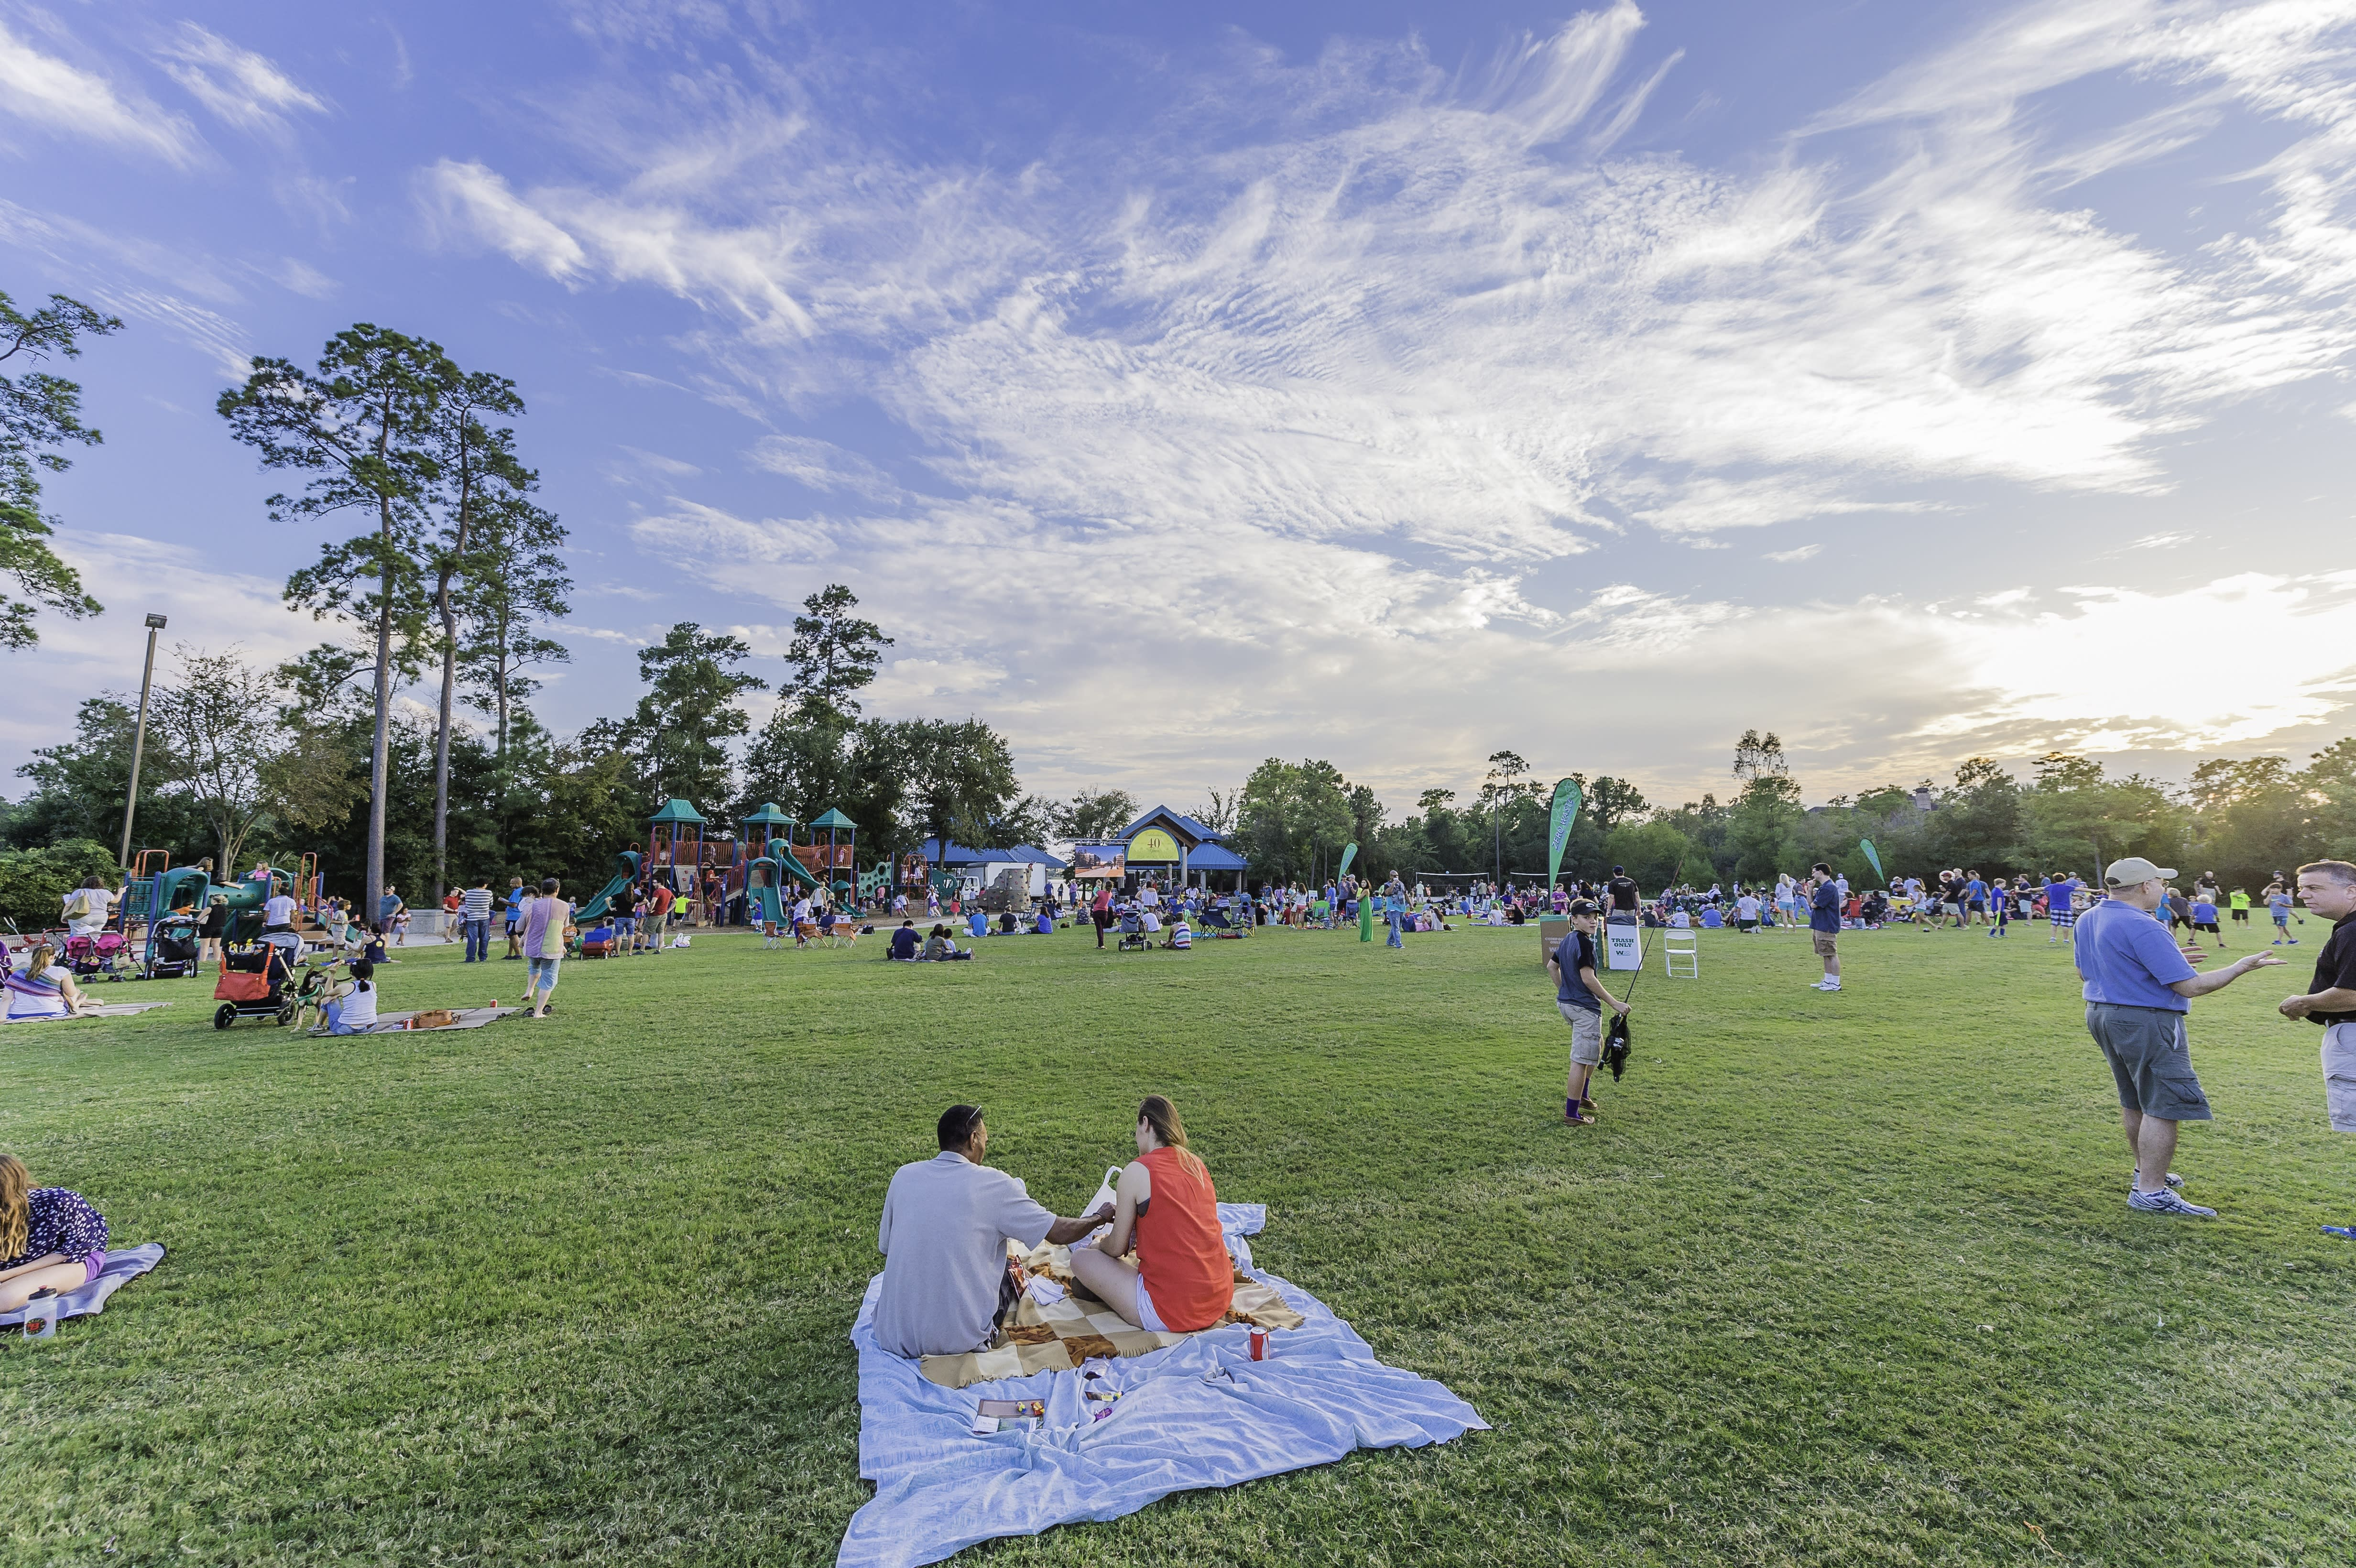 Family picnicking at Northshore Park in The Woodlands, TX